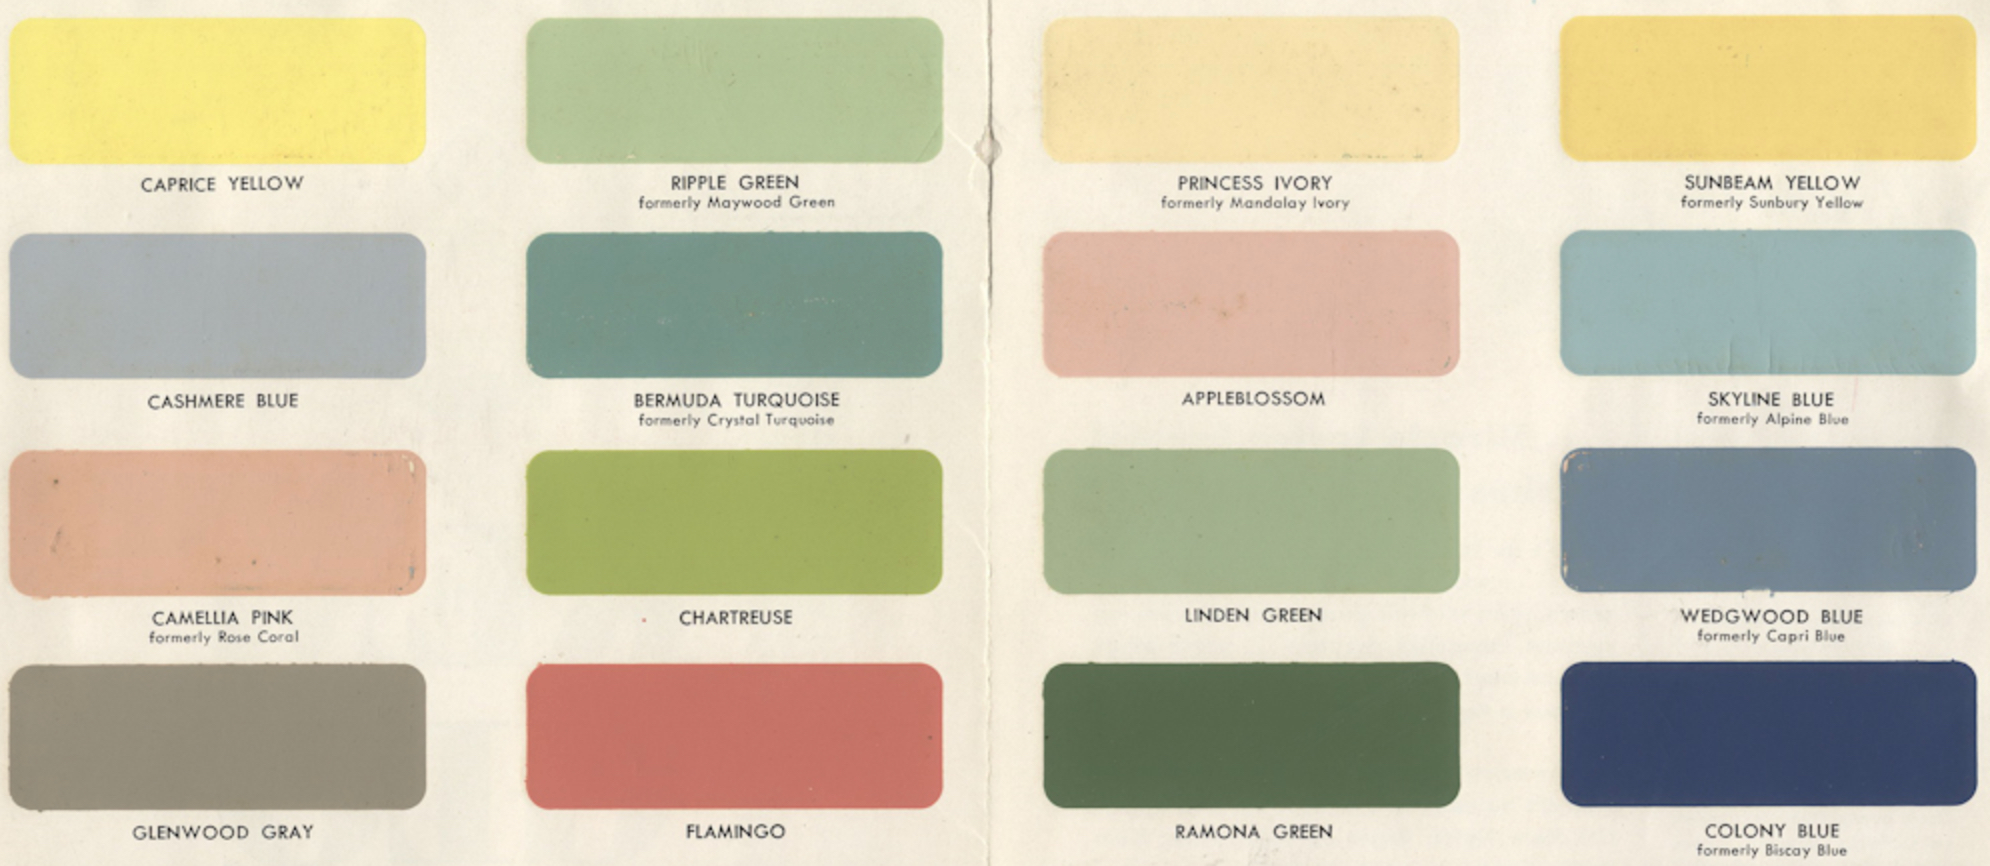 An Ai Invented A Bunch Of New Paint Colors That Are Hilariously Wrong Ars Technica